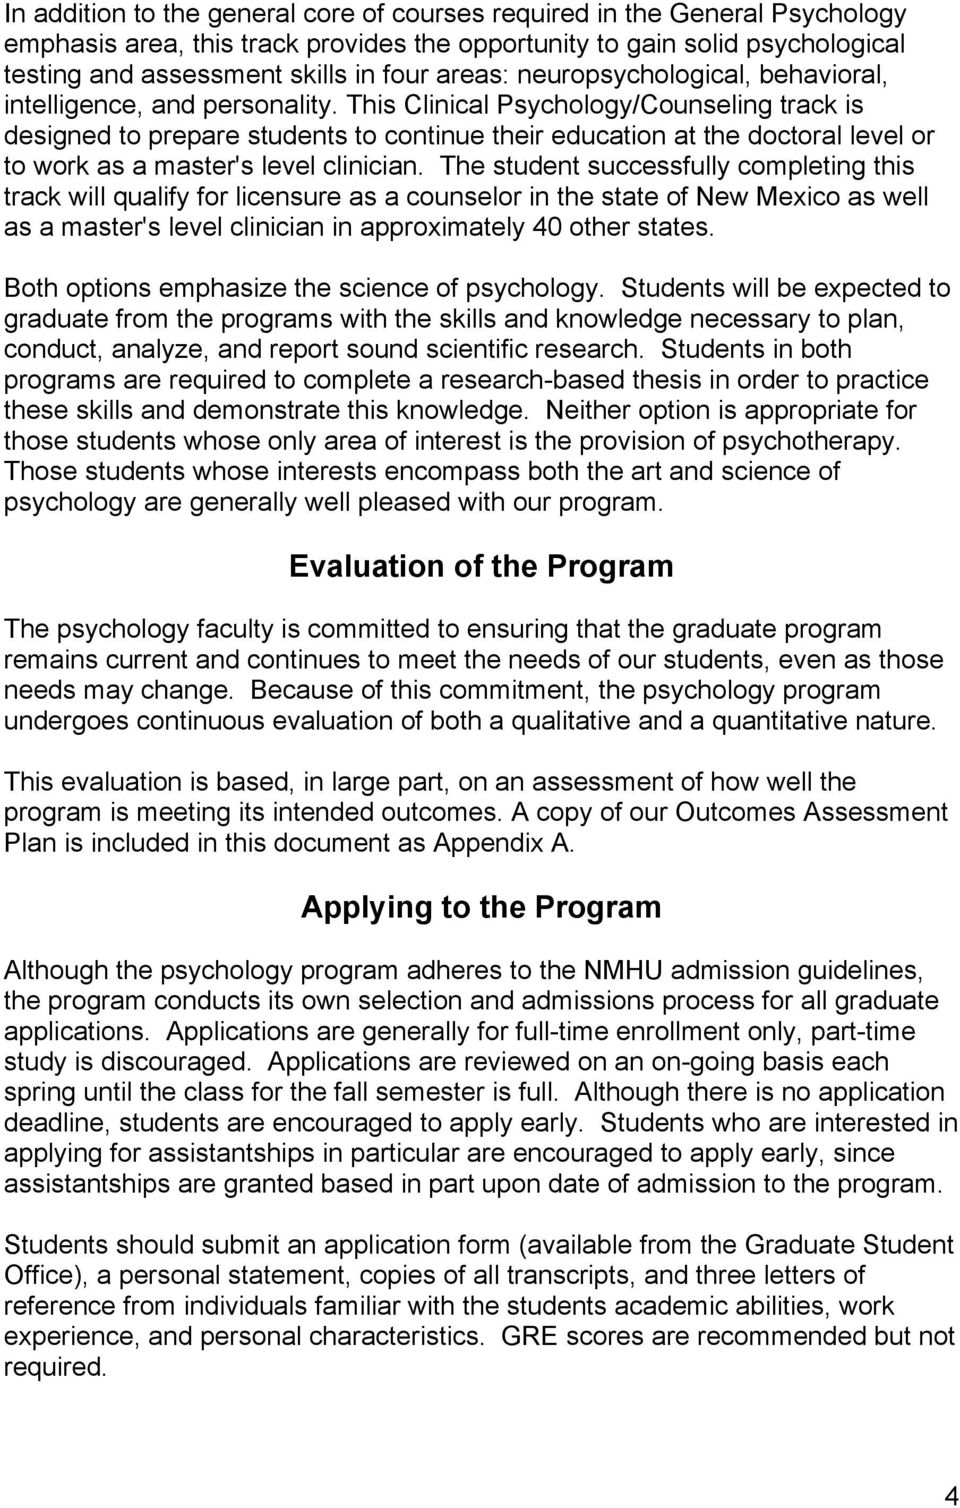 This Clinical Psychology/Counseling track is designed to prepare students to continue their education at the doctoral level or to work as a master's level clinician.